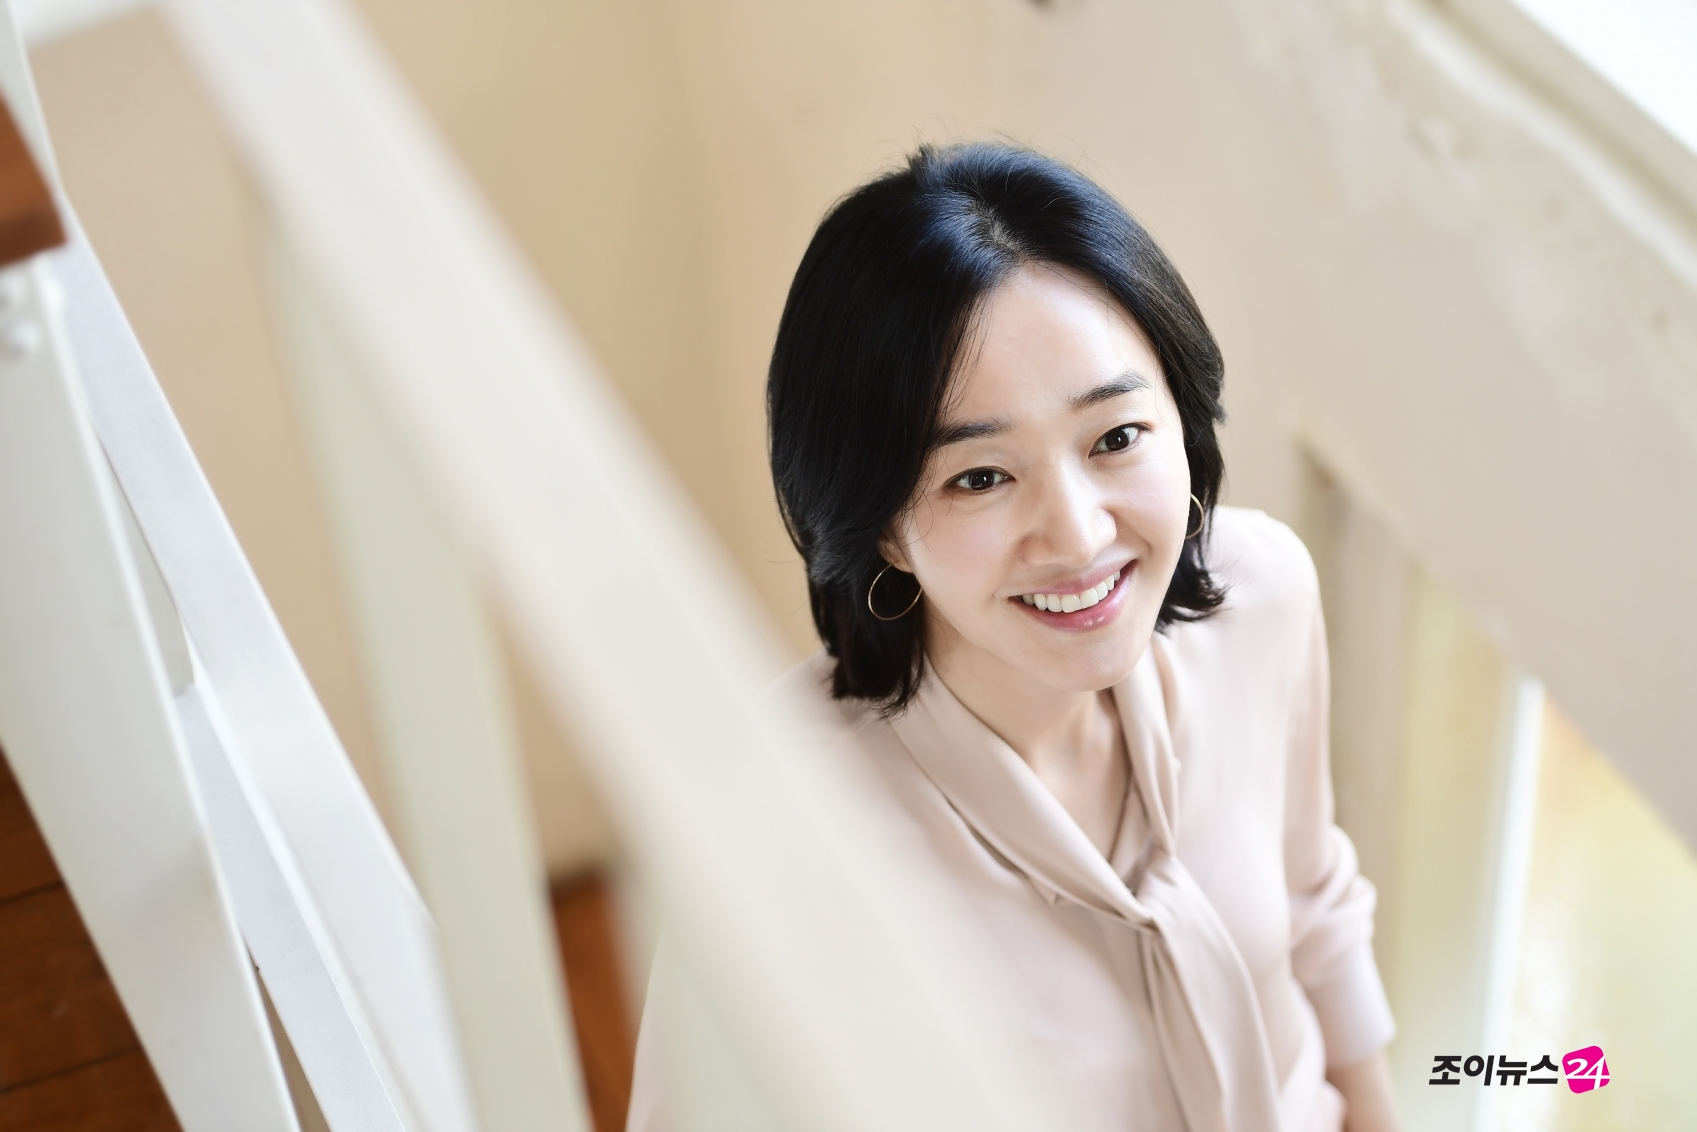 <p><></p><p>Actor Soo Ae of movie High Society is posing in an interview with.</p><p>Soo Ae undertook the role of Mr. Susan, deputy director of MuséedOrsay, who chose Sudan and method for the ambition to advance into the High Society at High Society (Director revolution) and expanded the performance. The opening is 29th.</p>